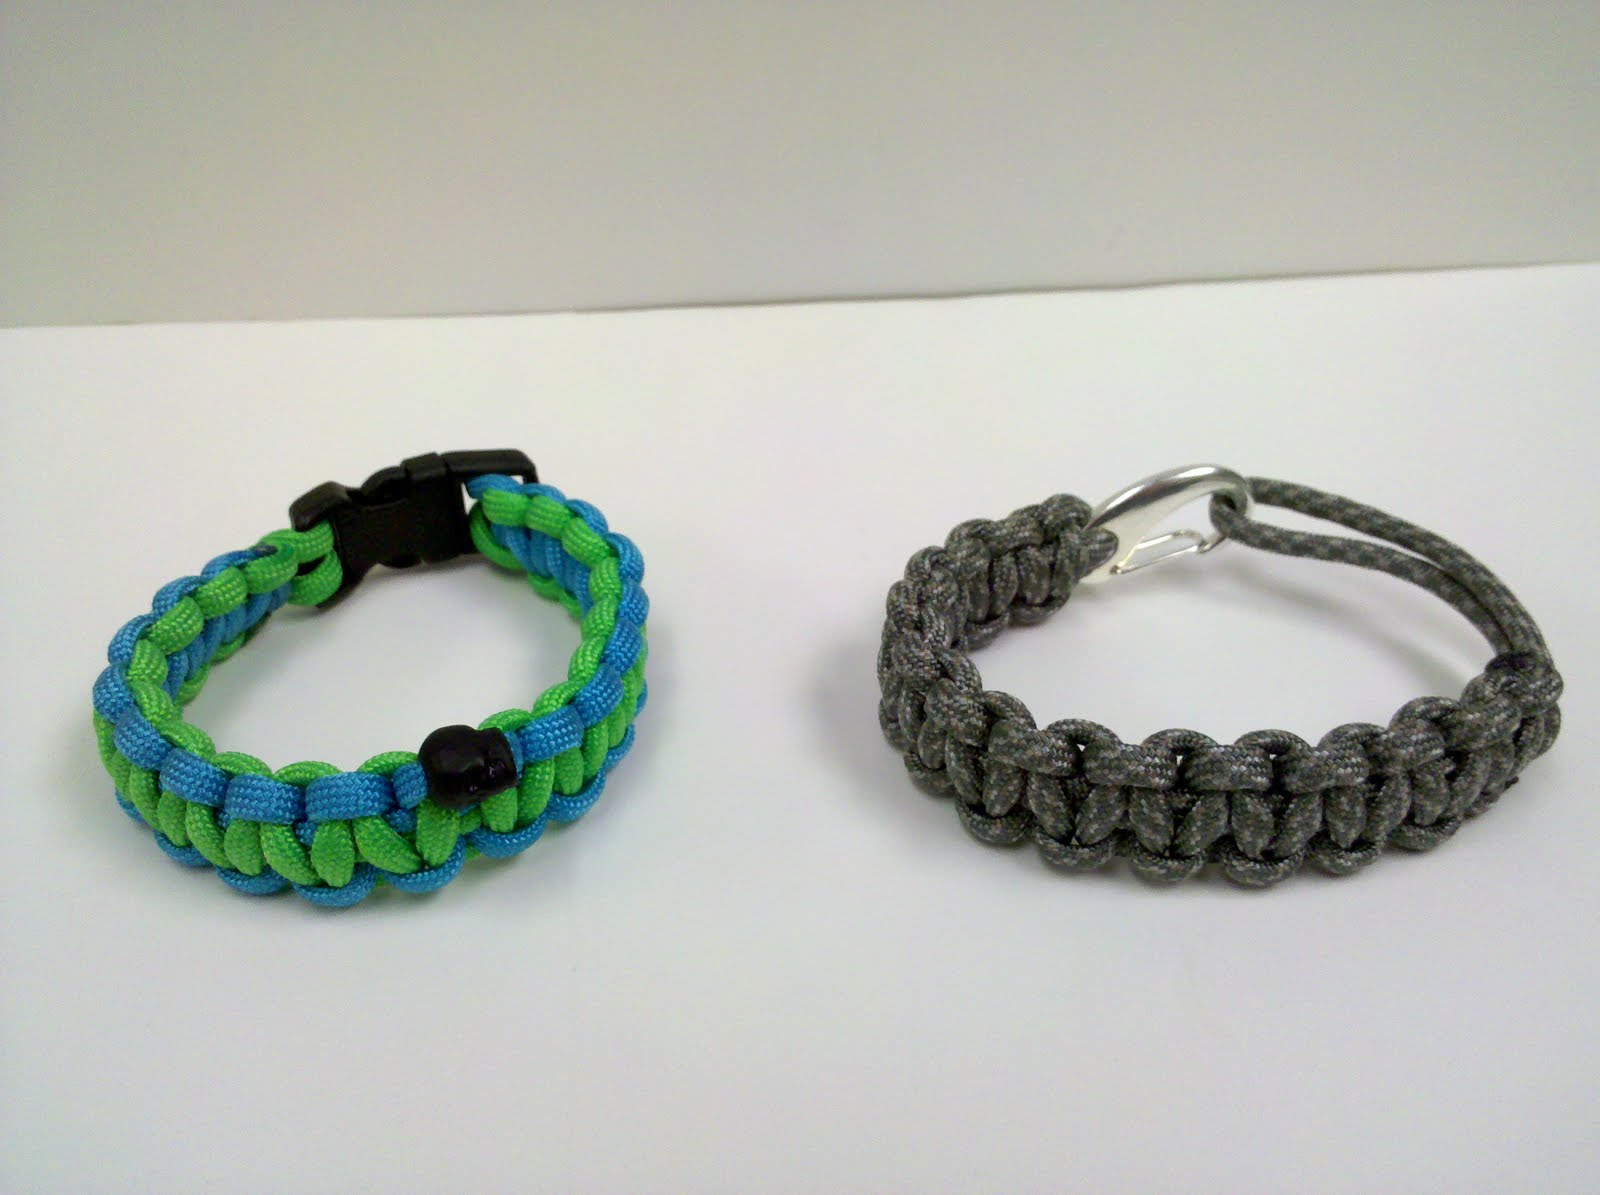 paracord projects In this playlist i put all those videos that deal with paracord and paracord projects.